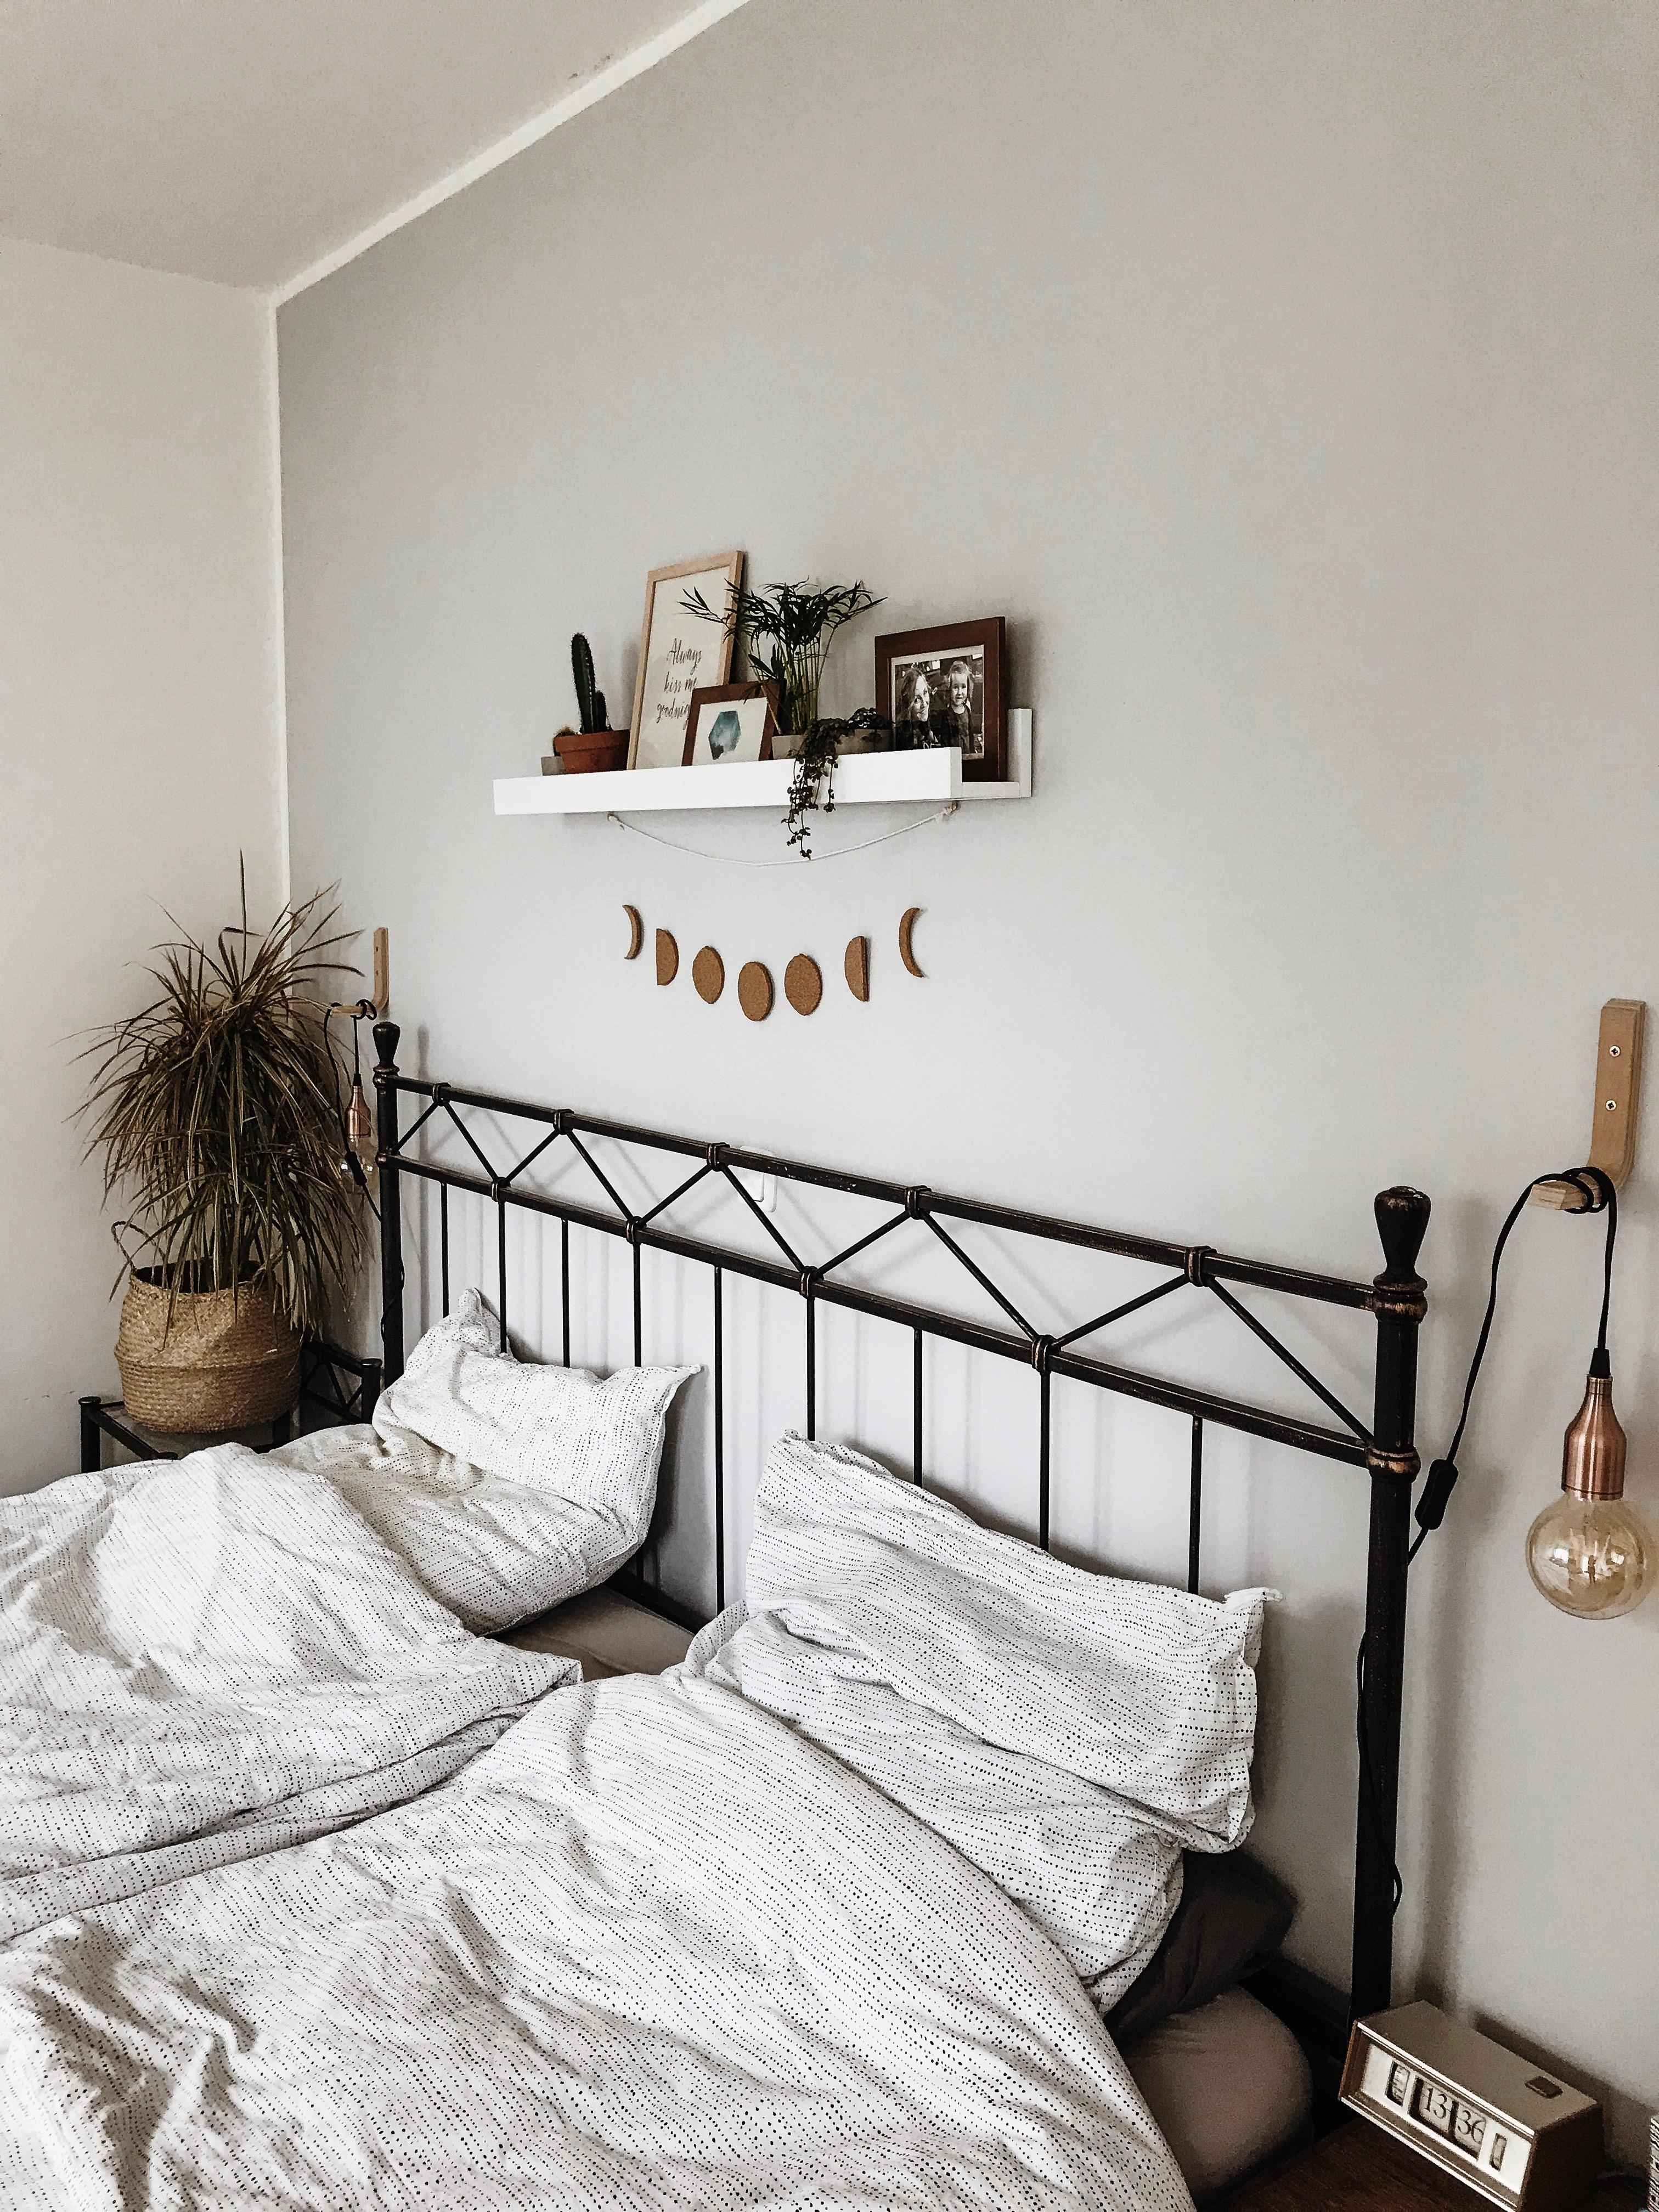 Schlafzimmer schlafzimmerliebe mybdrm bedroominspo myhome atmine cornersofmyhome bedroom couchstyle  9bbf6d55 1e7c 452f a8b2 fb7920b9e9c3